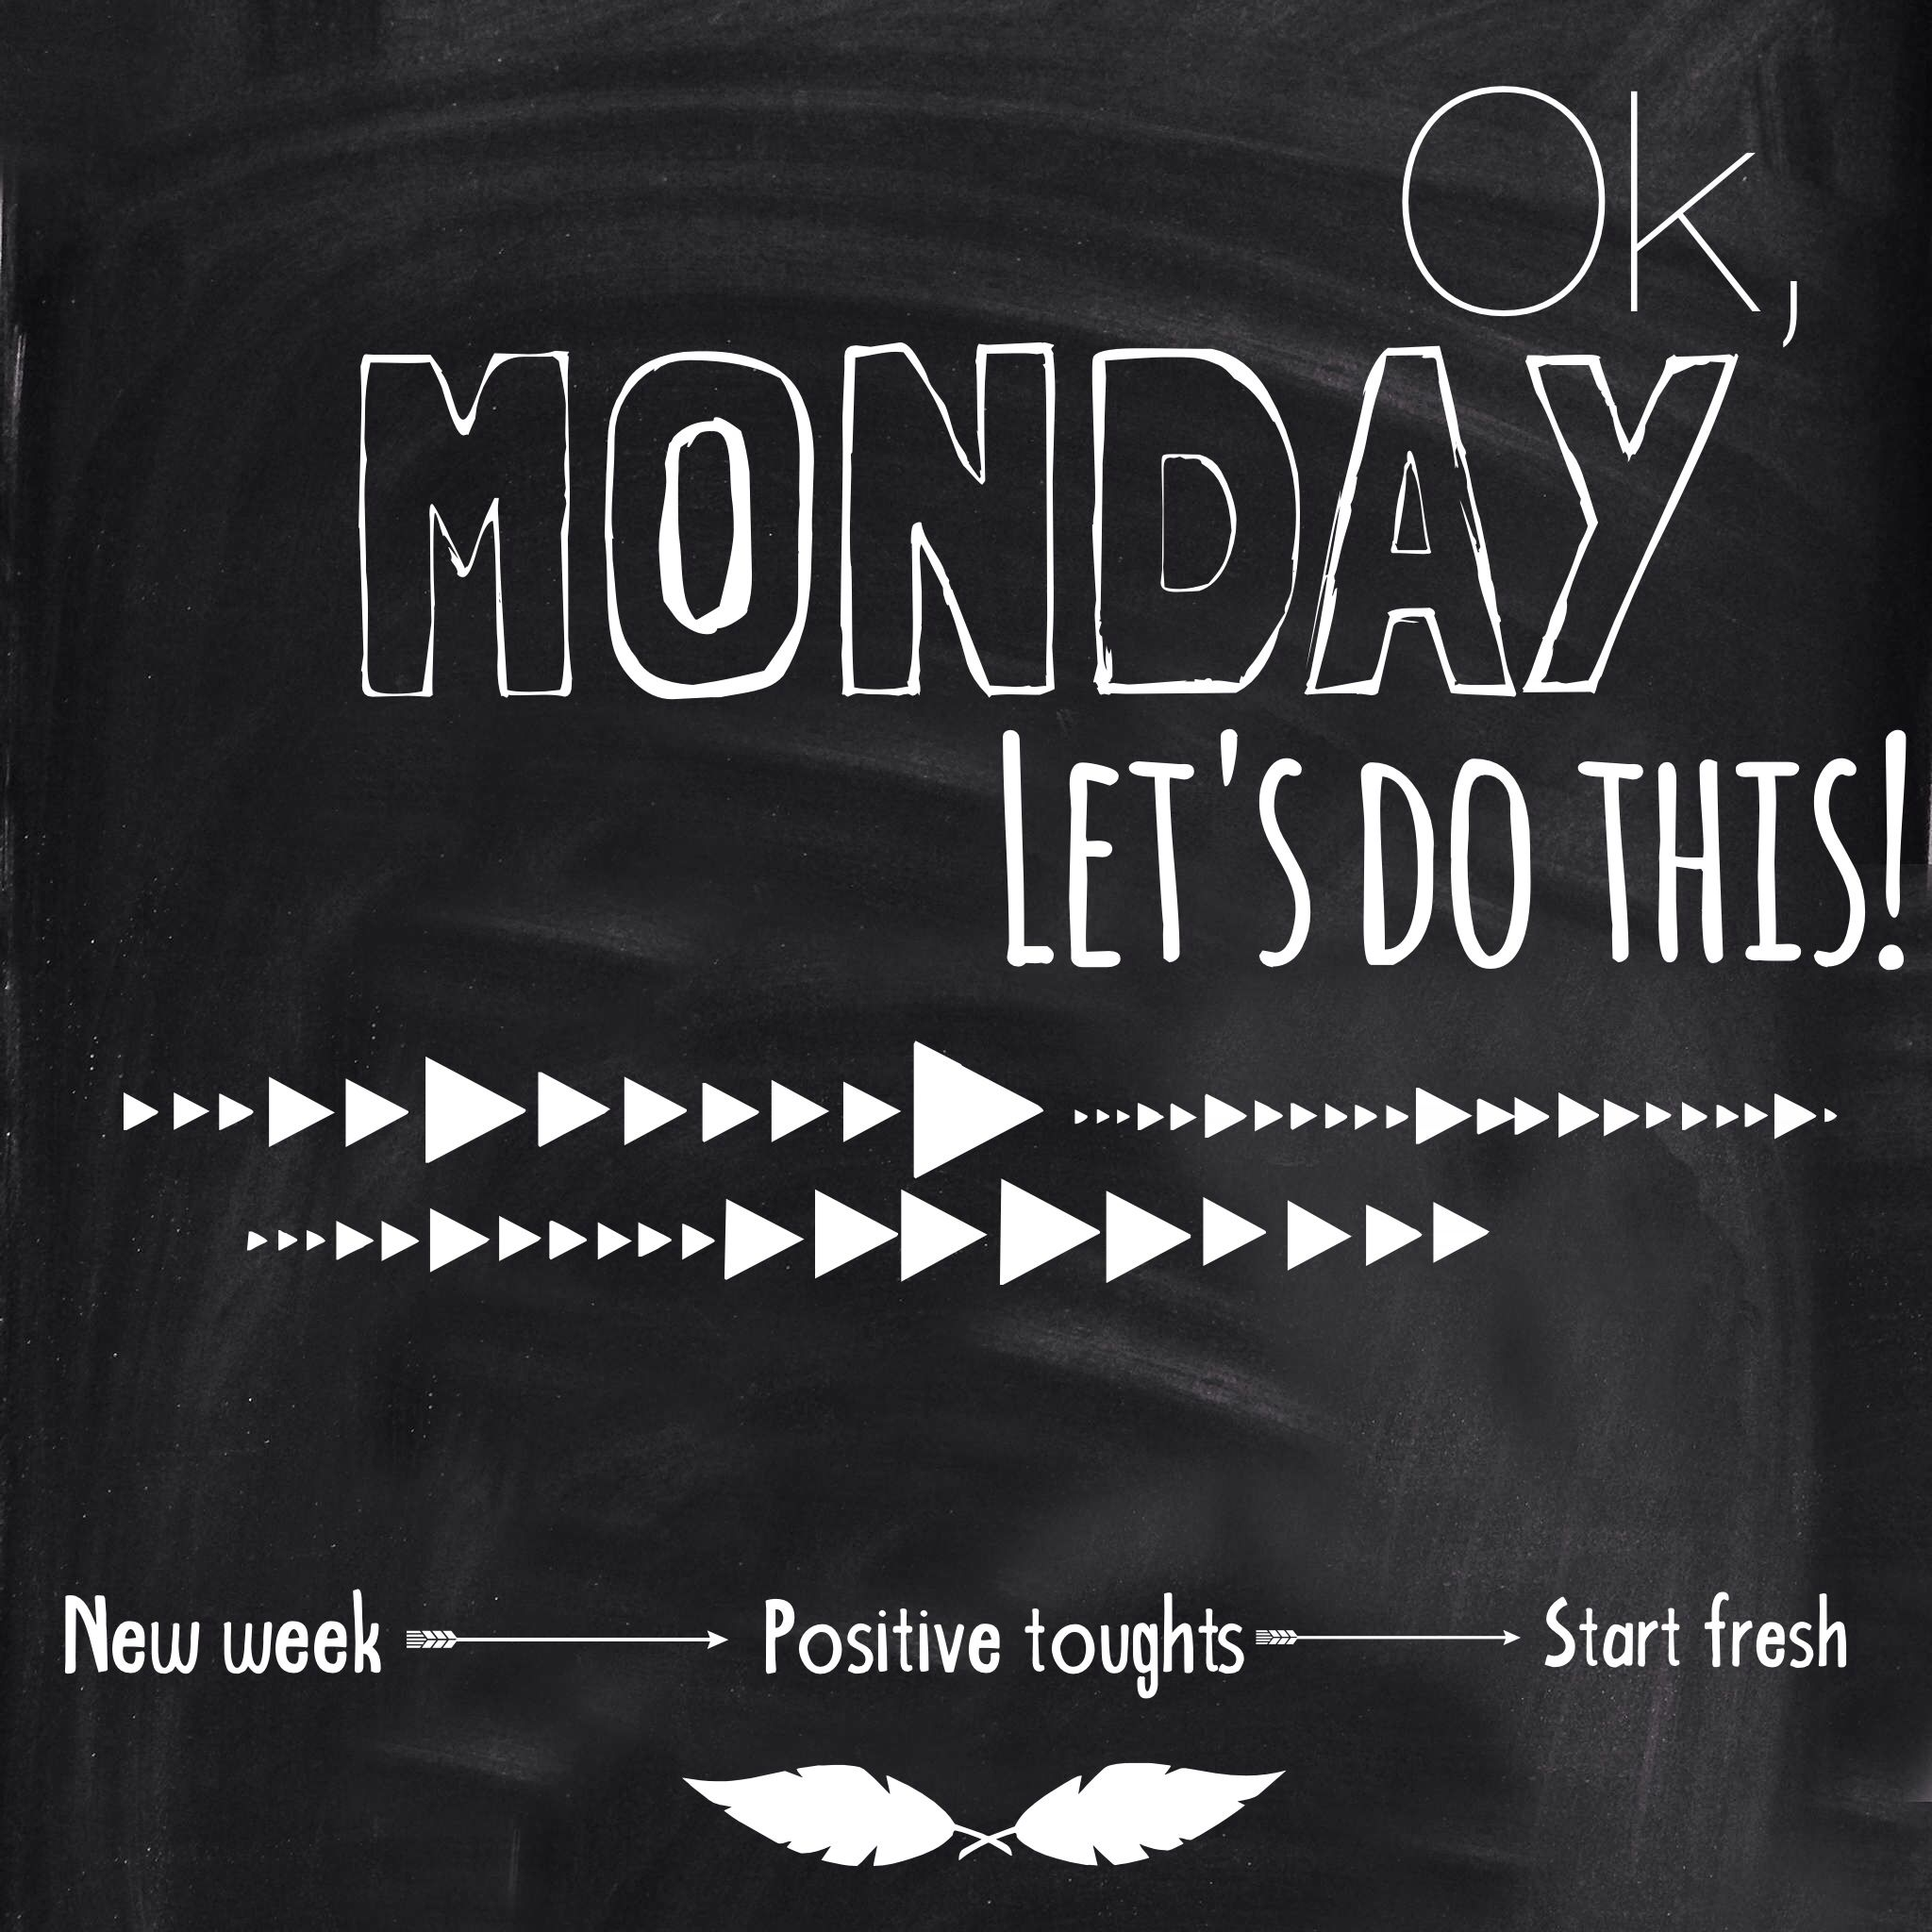 Week Quotes Magnificent Quote Ok Monday Let's Do This New Week Positive Thou